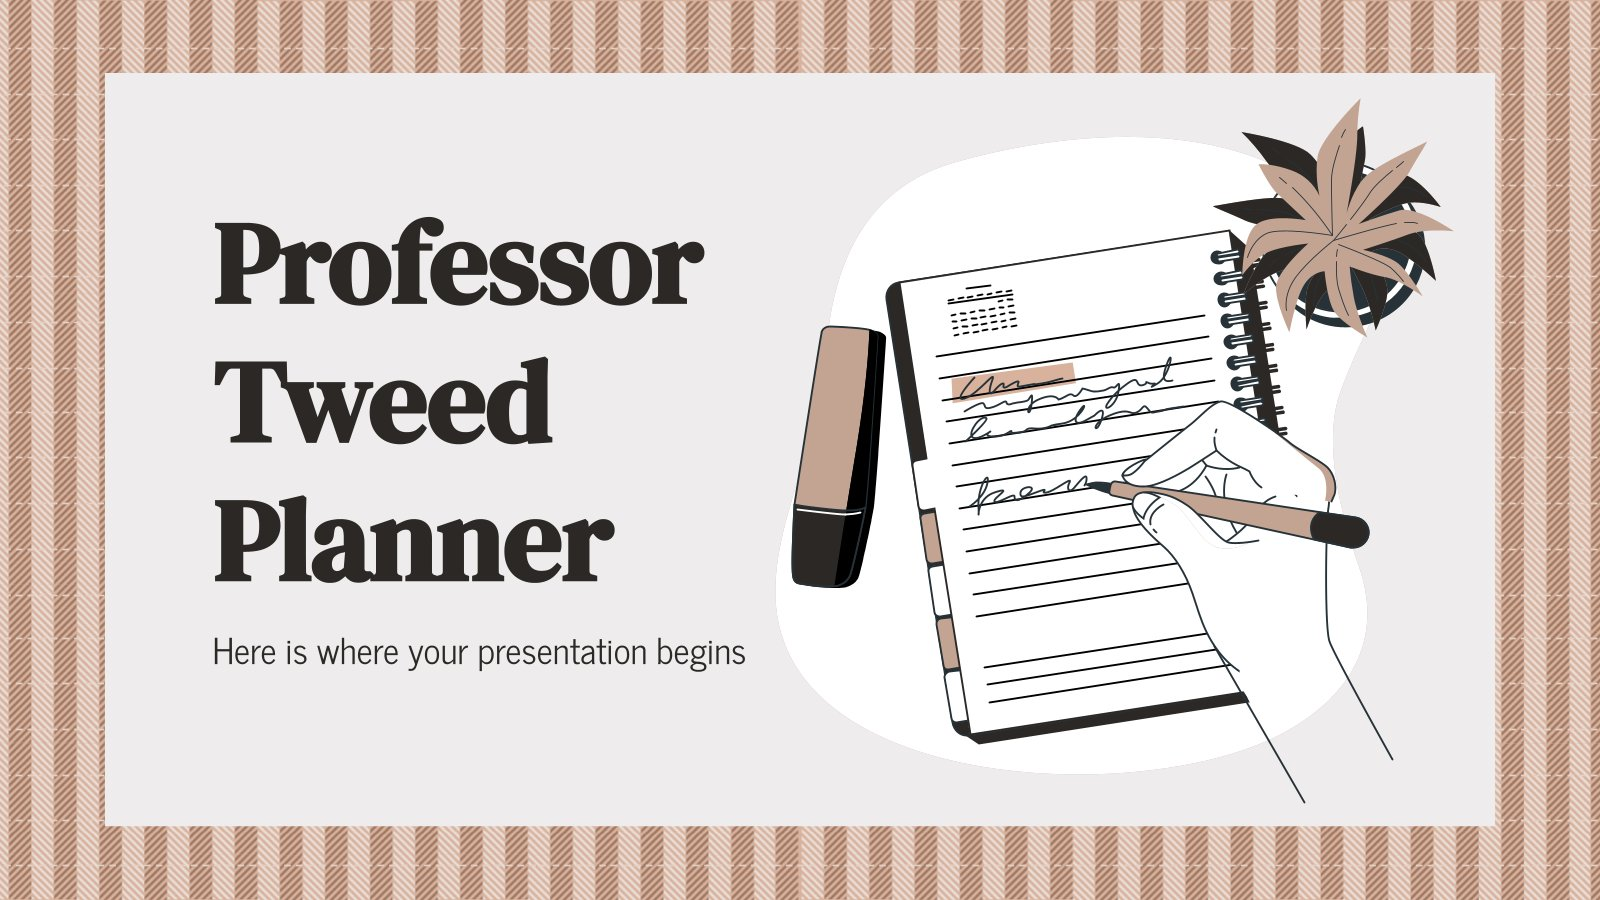 Professor Tweed Planner presentation template